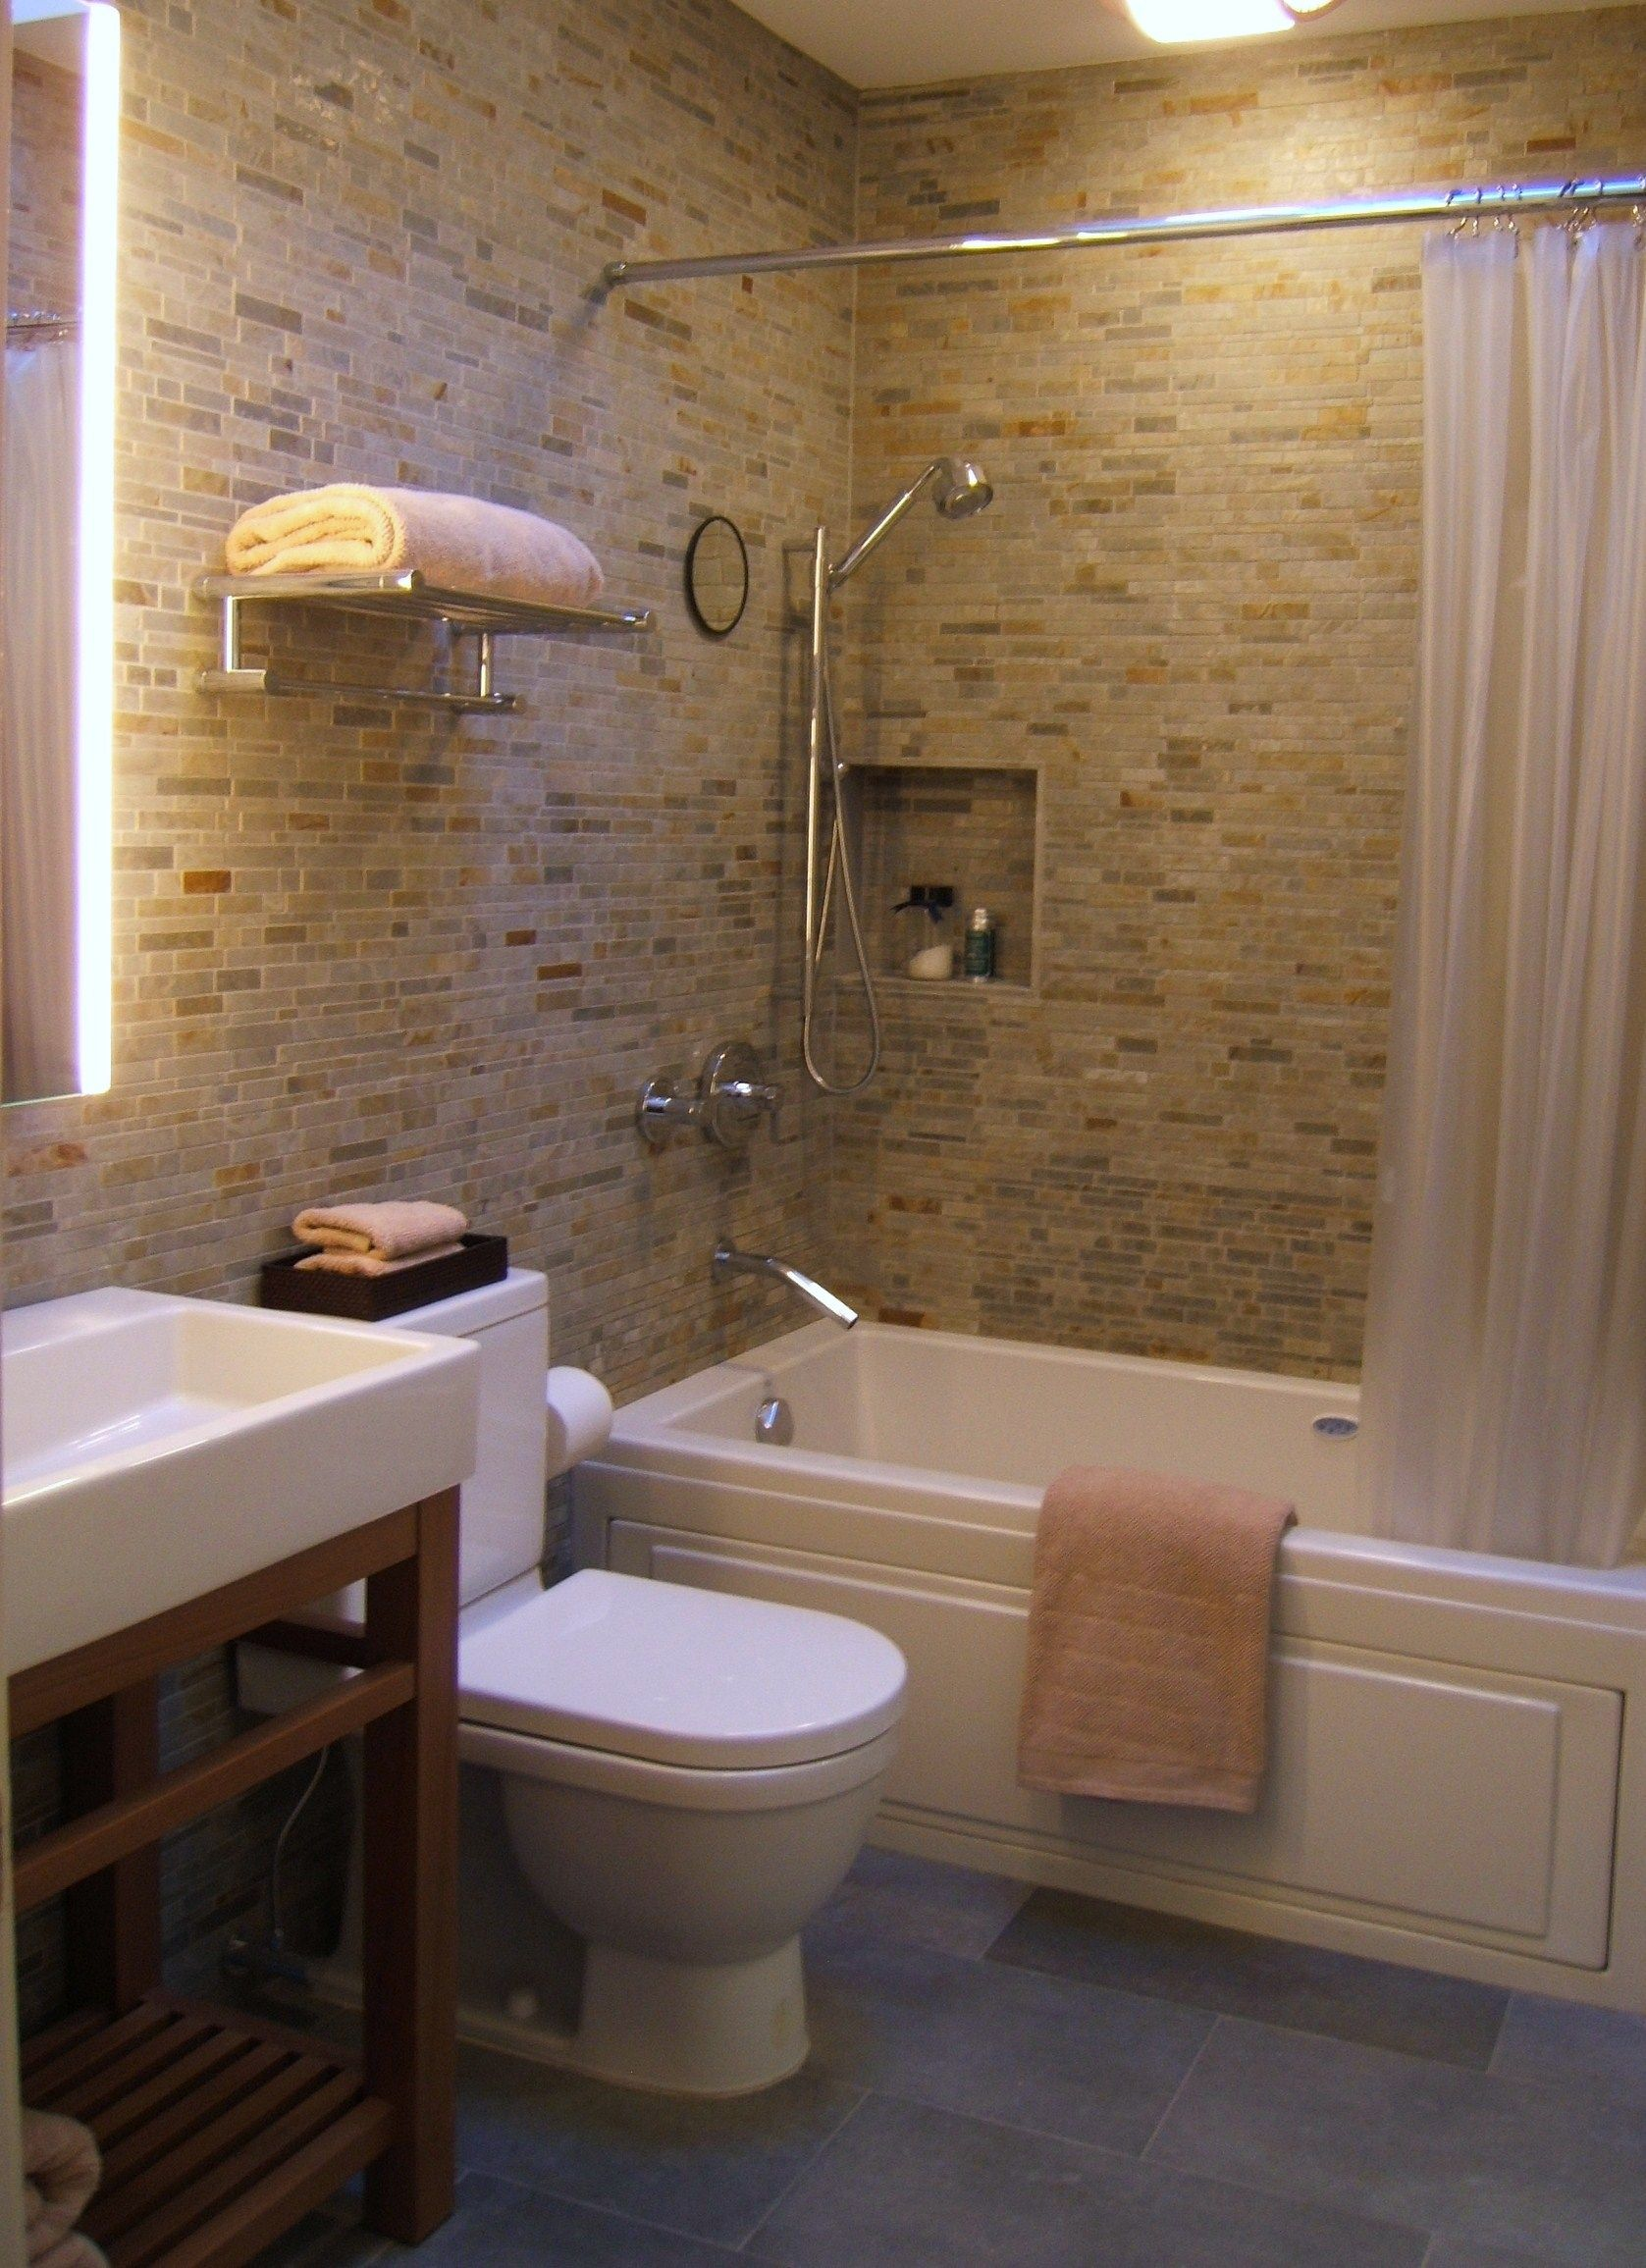 small bathroom designs south africa - Bathroom Tile Ideas South Africa